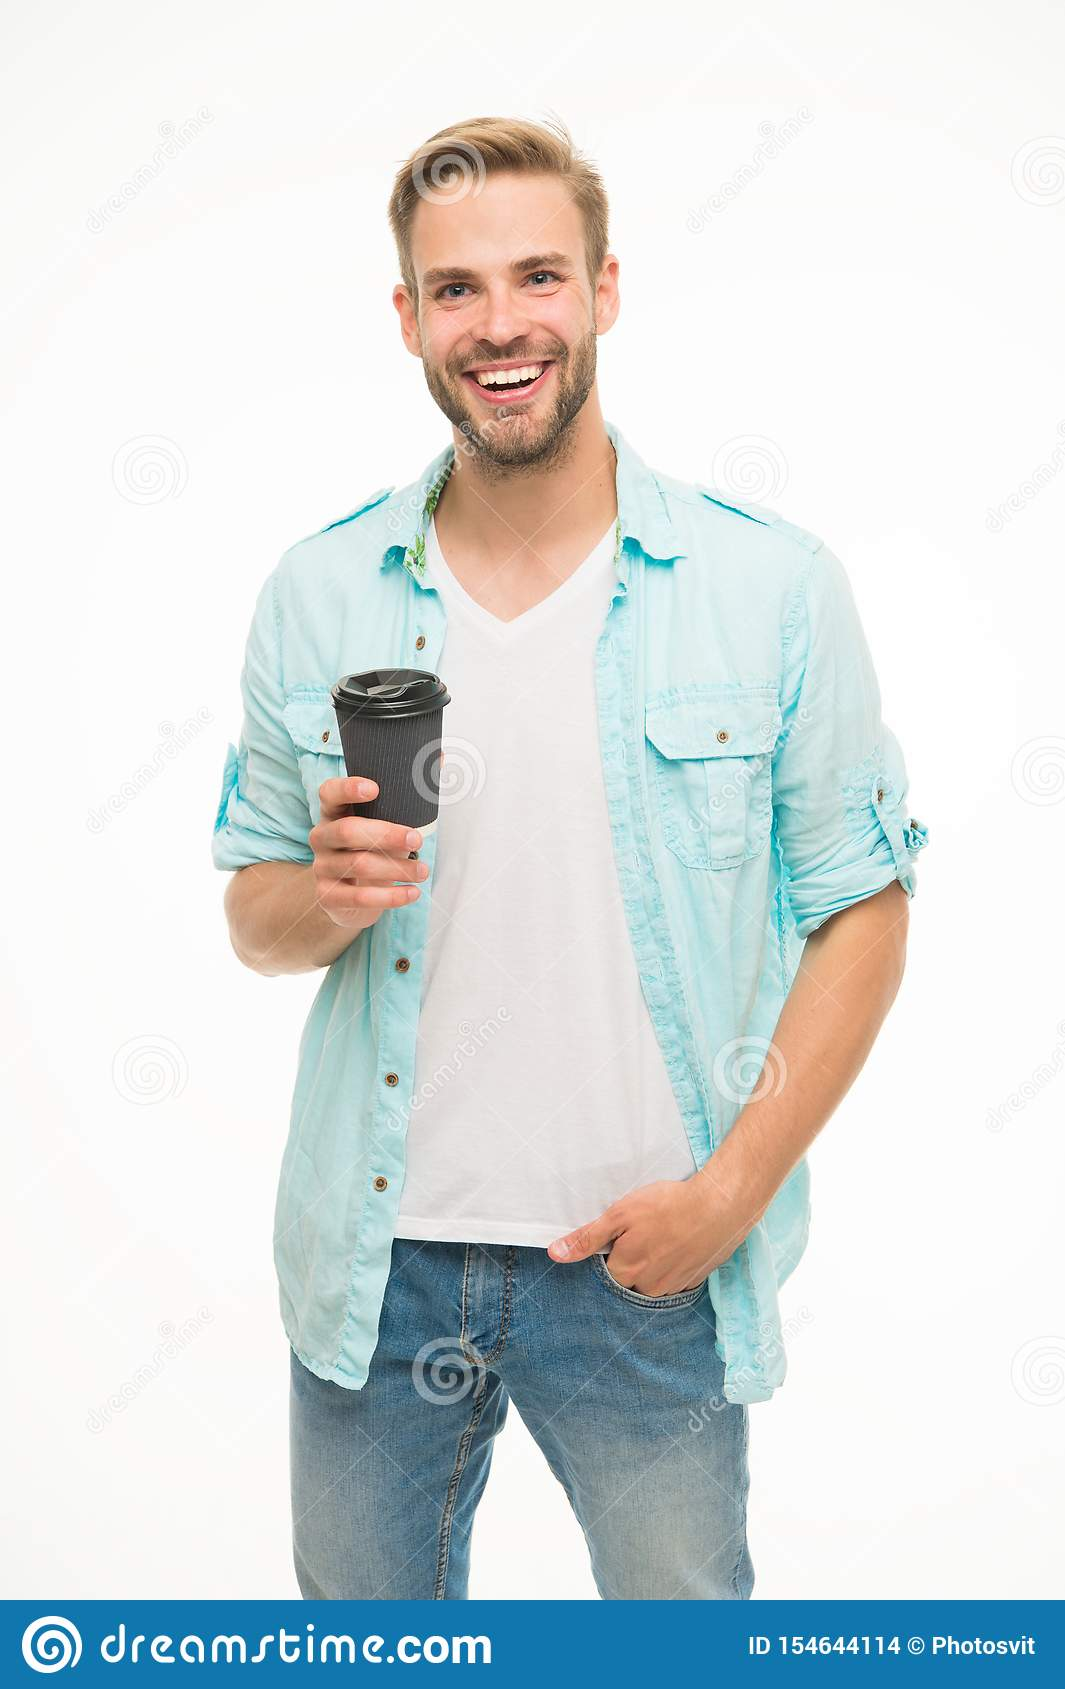 Have coffee for good mood. Recyclable coffee cup. Hipster man hold paper coffee cup. Relaxing break. Drink it on the go